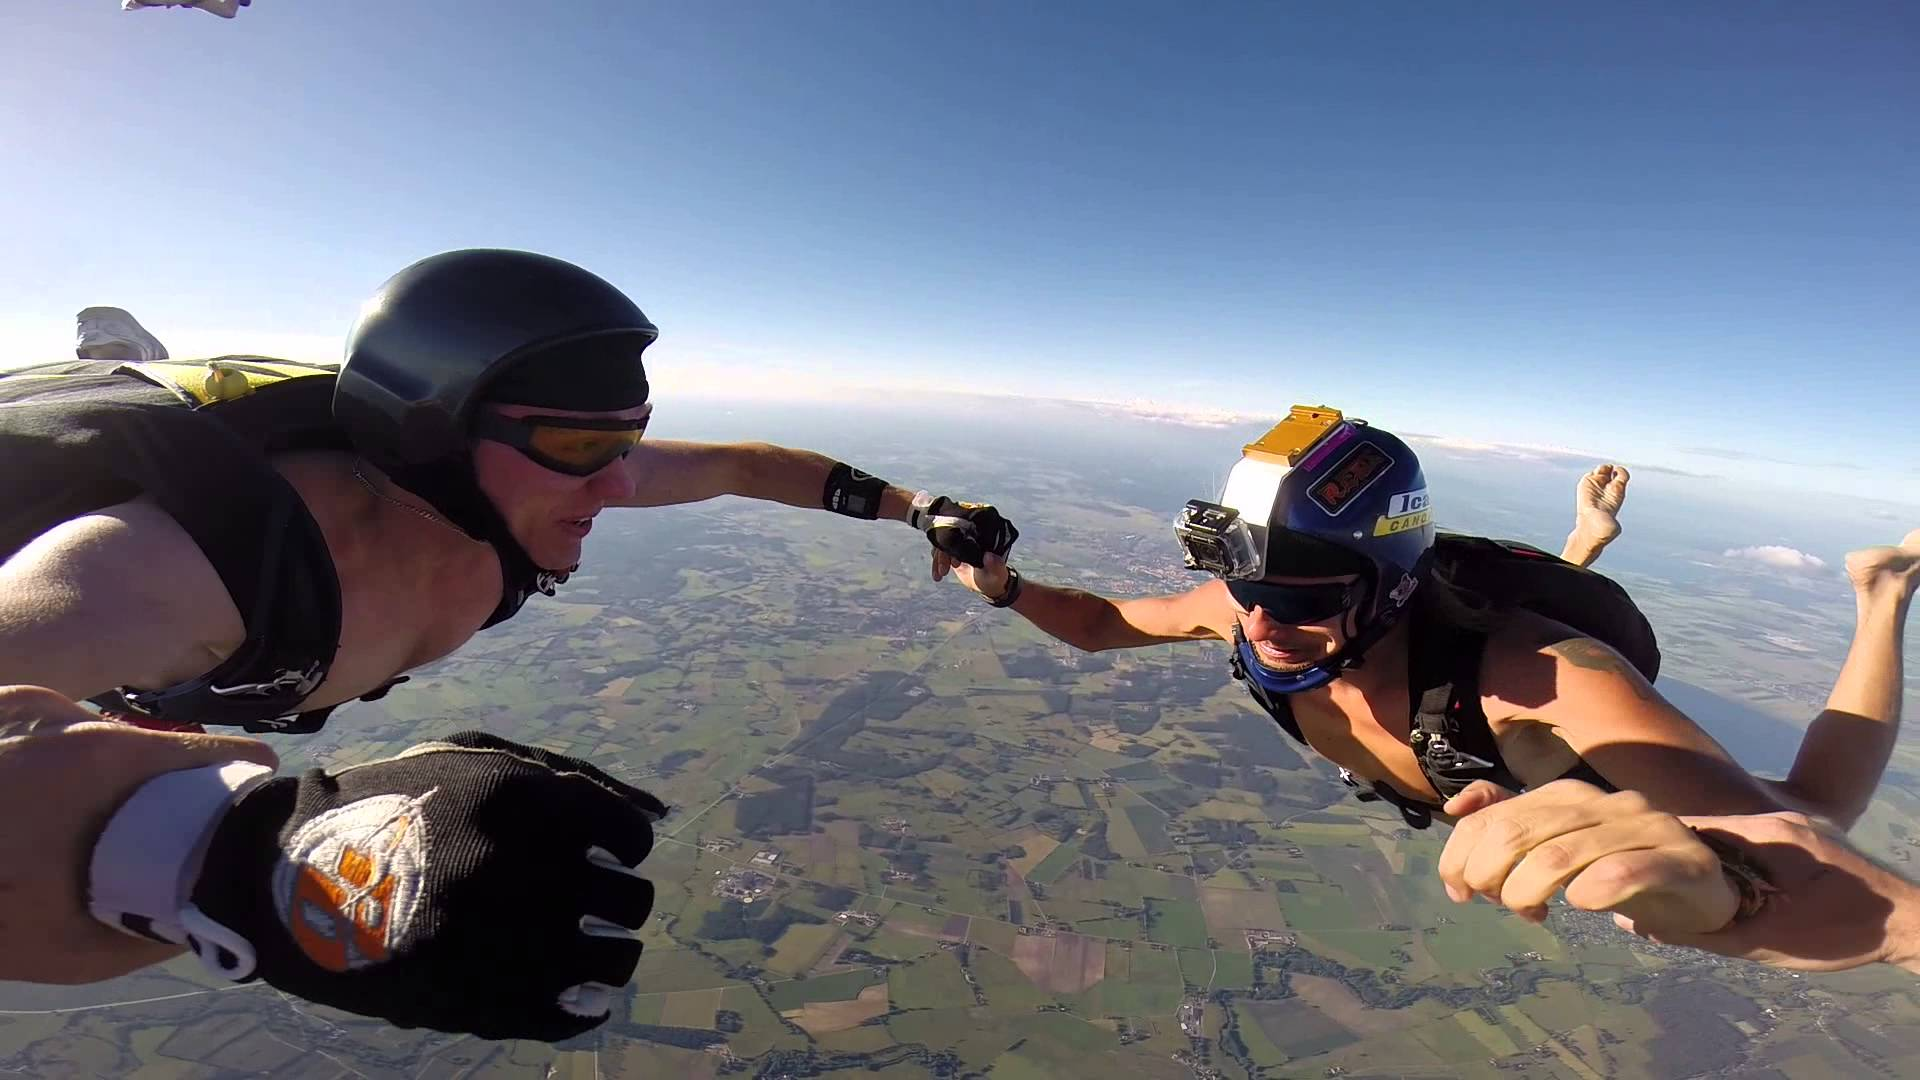 Couple has sex while skydiving faa very interested